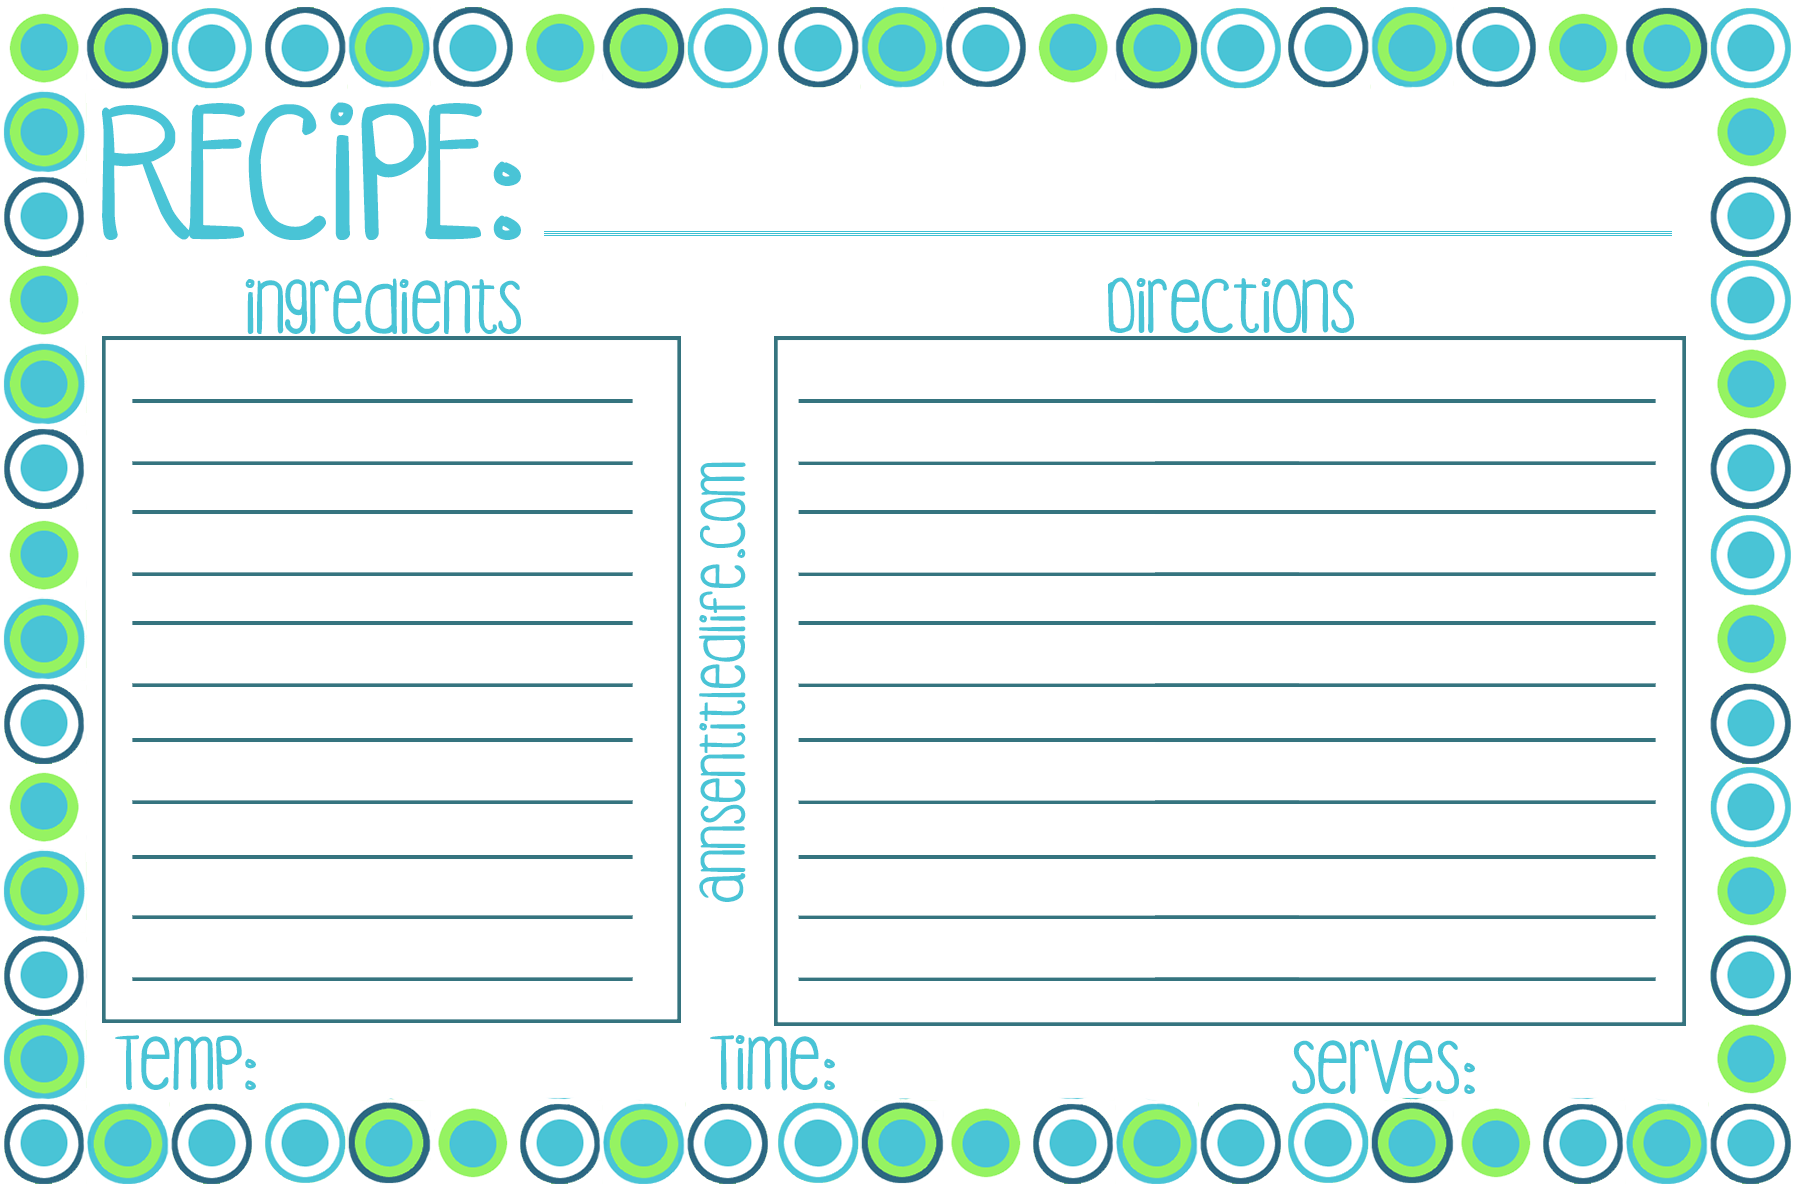 free printable recipe card  meal planner and kitchen labels